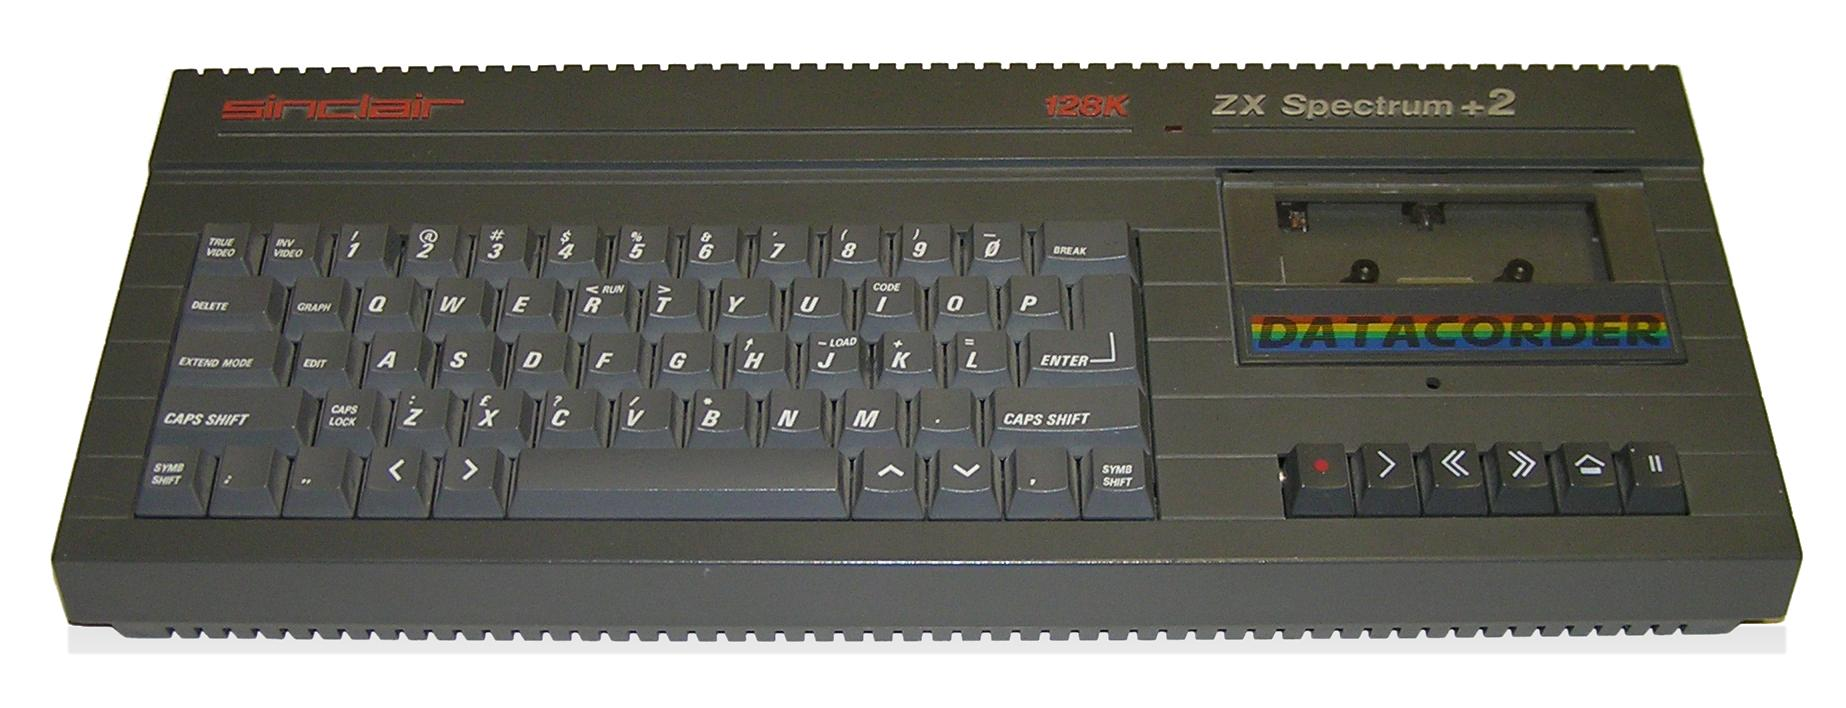 http://upload.wikimedia.org/wikipedia/commons/5/5e/ZX_Spectrum_Plus2.jpeg